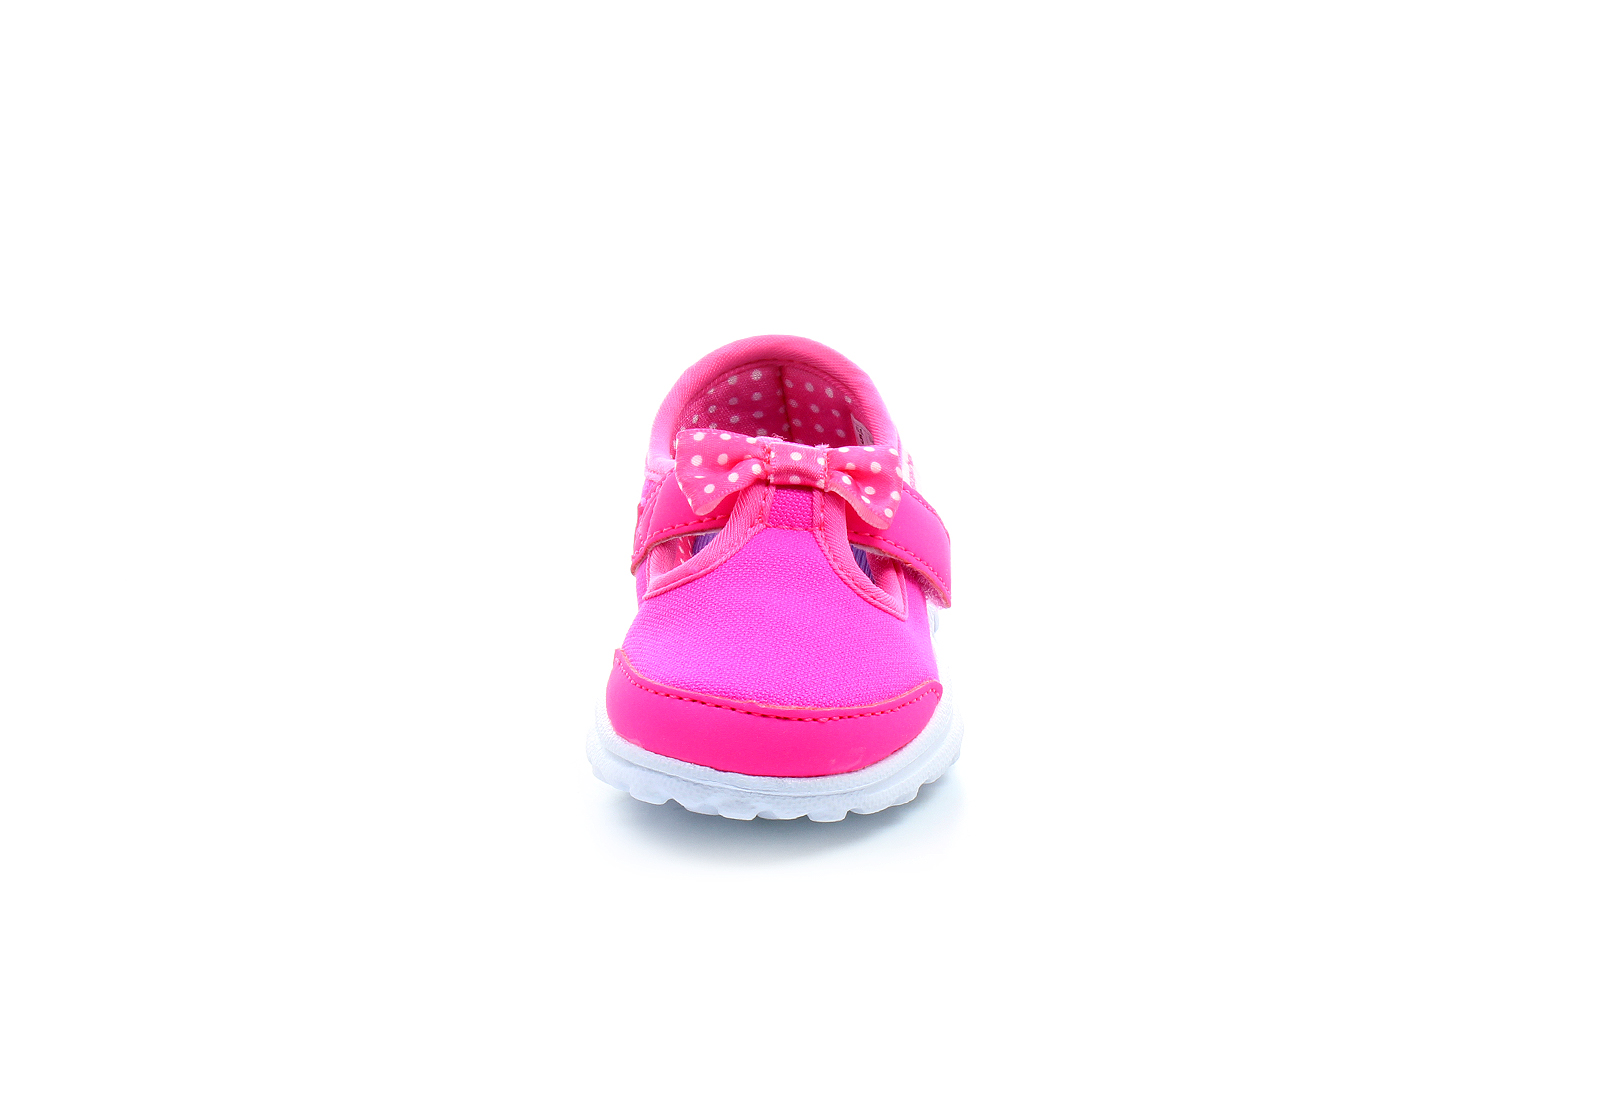 6b8741a2d086 Skechers Shoes - Bitty Bow - 81068n-nppk - Online shop for sneakers ...